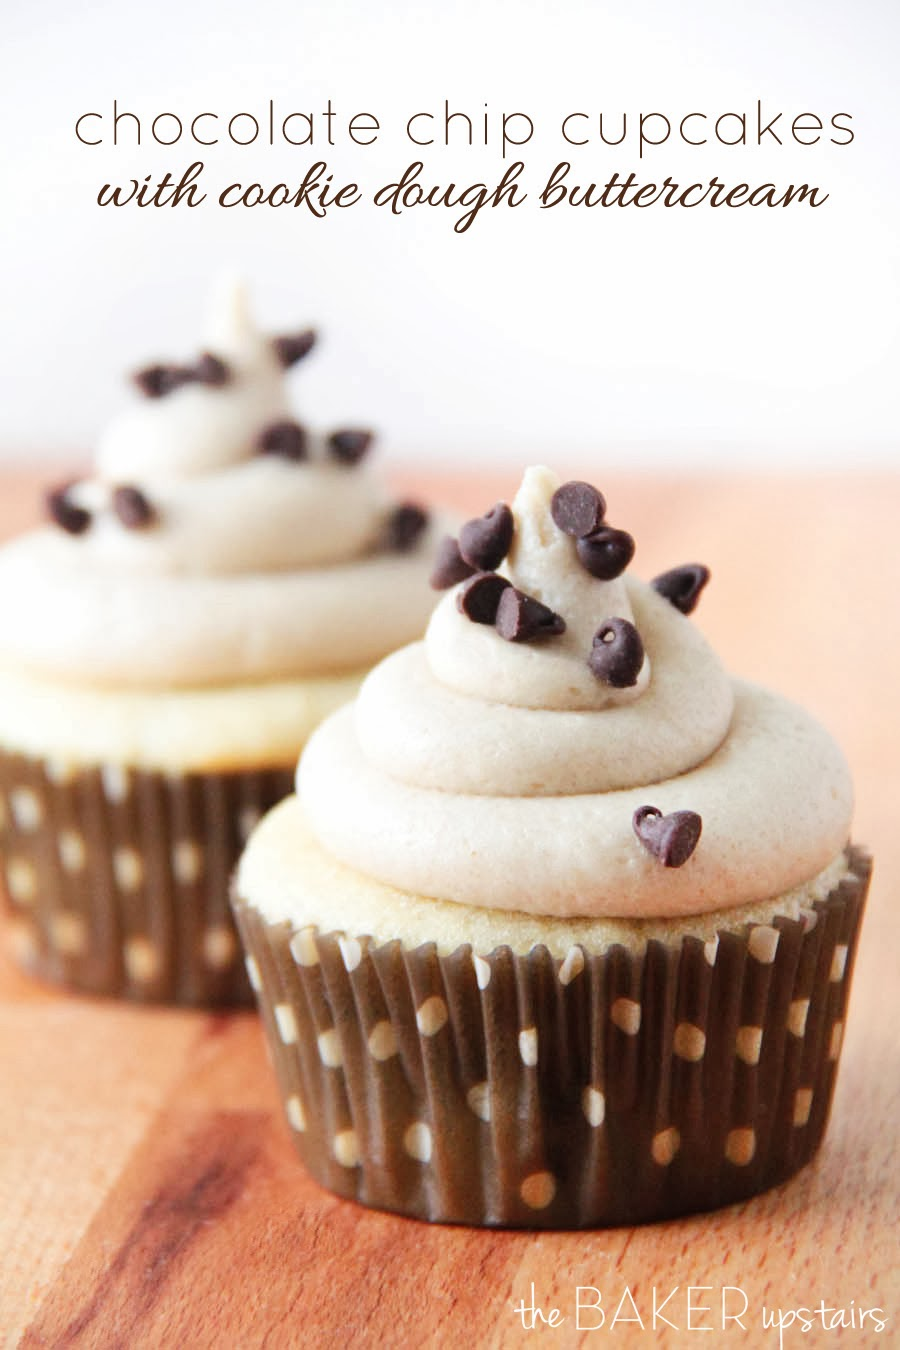 ... baker upstairs: chocolate chip cupcakes with cookie dough buttercream